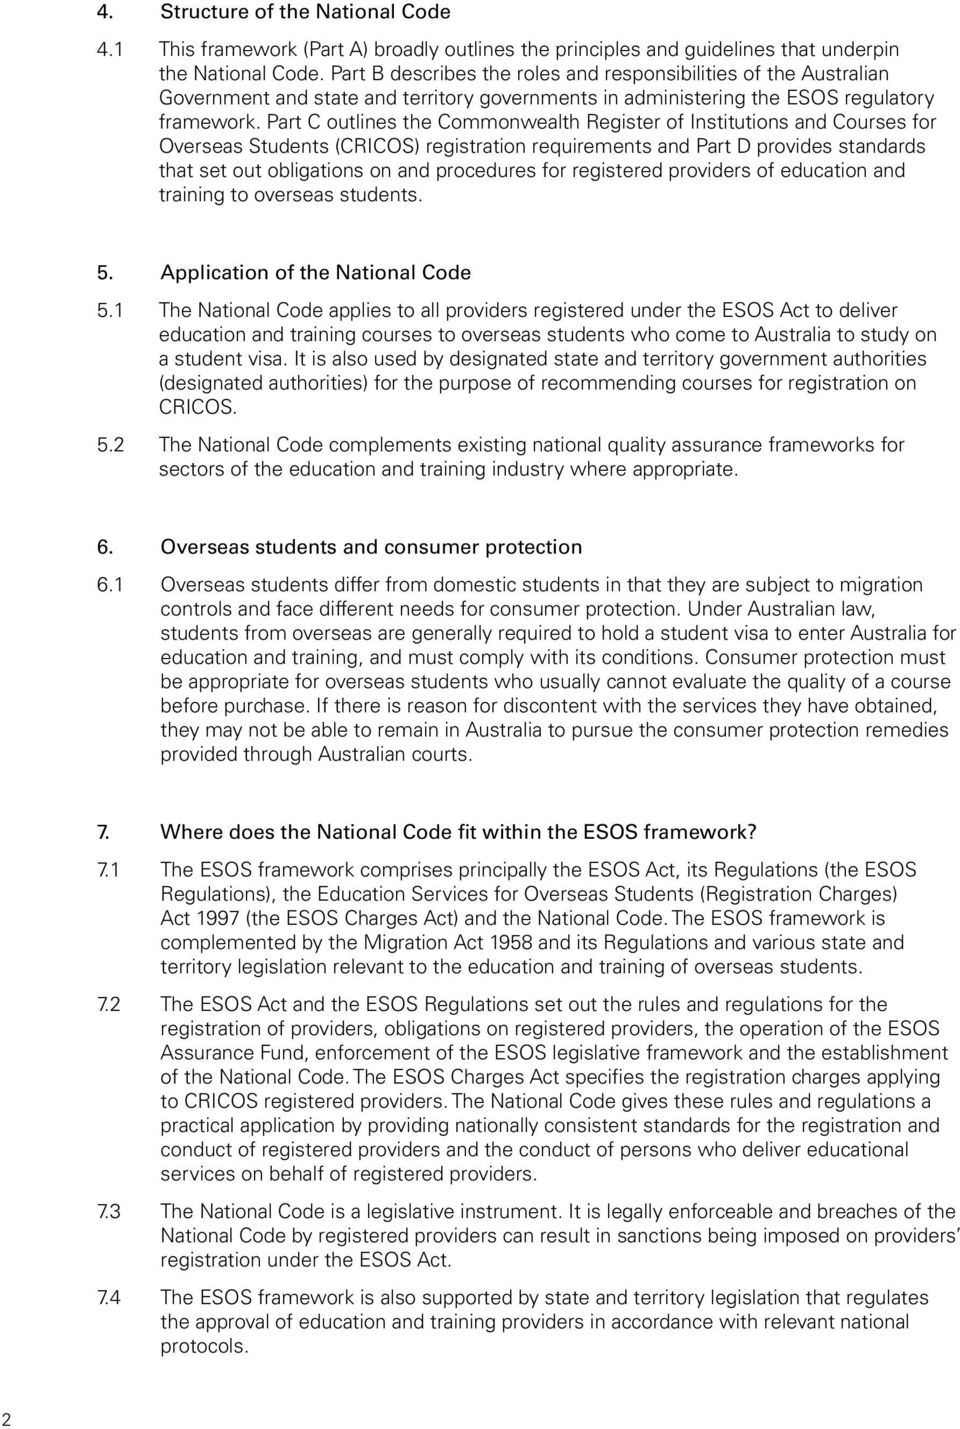 Part C outlines the Commonwealth Register of Institutions and Courses for Overseas Students (CRICOS) registration requirements and Part D provides standards that set out obligations on and procedures